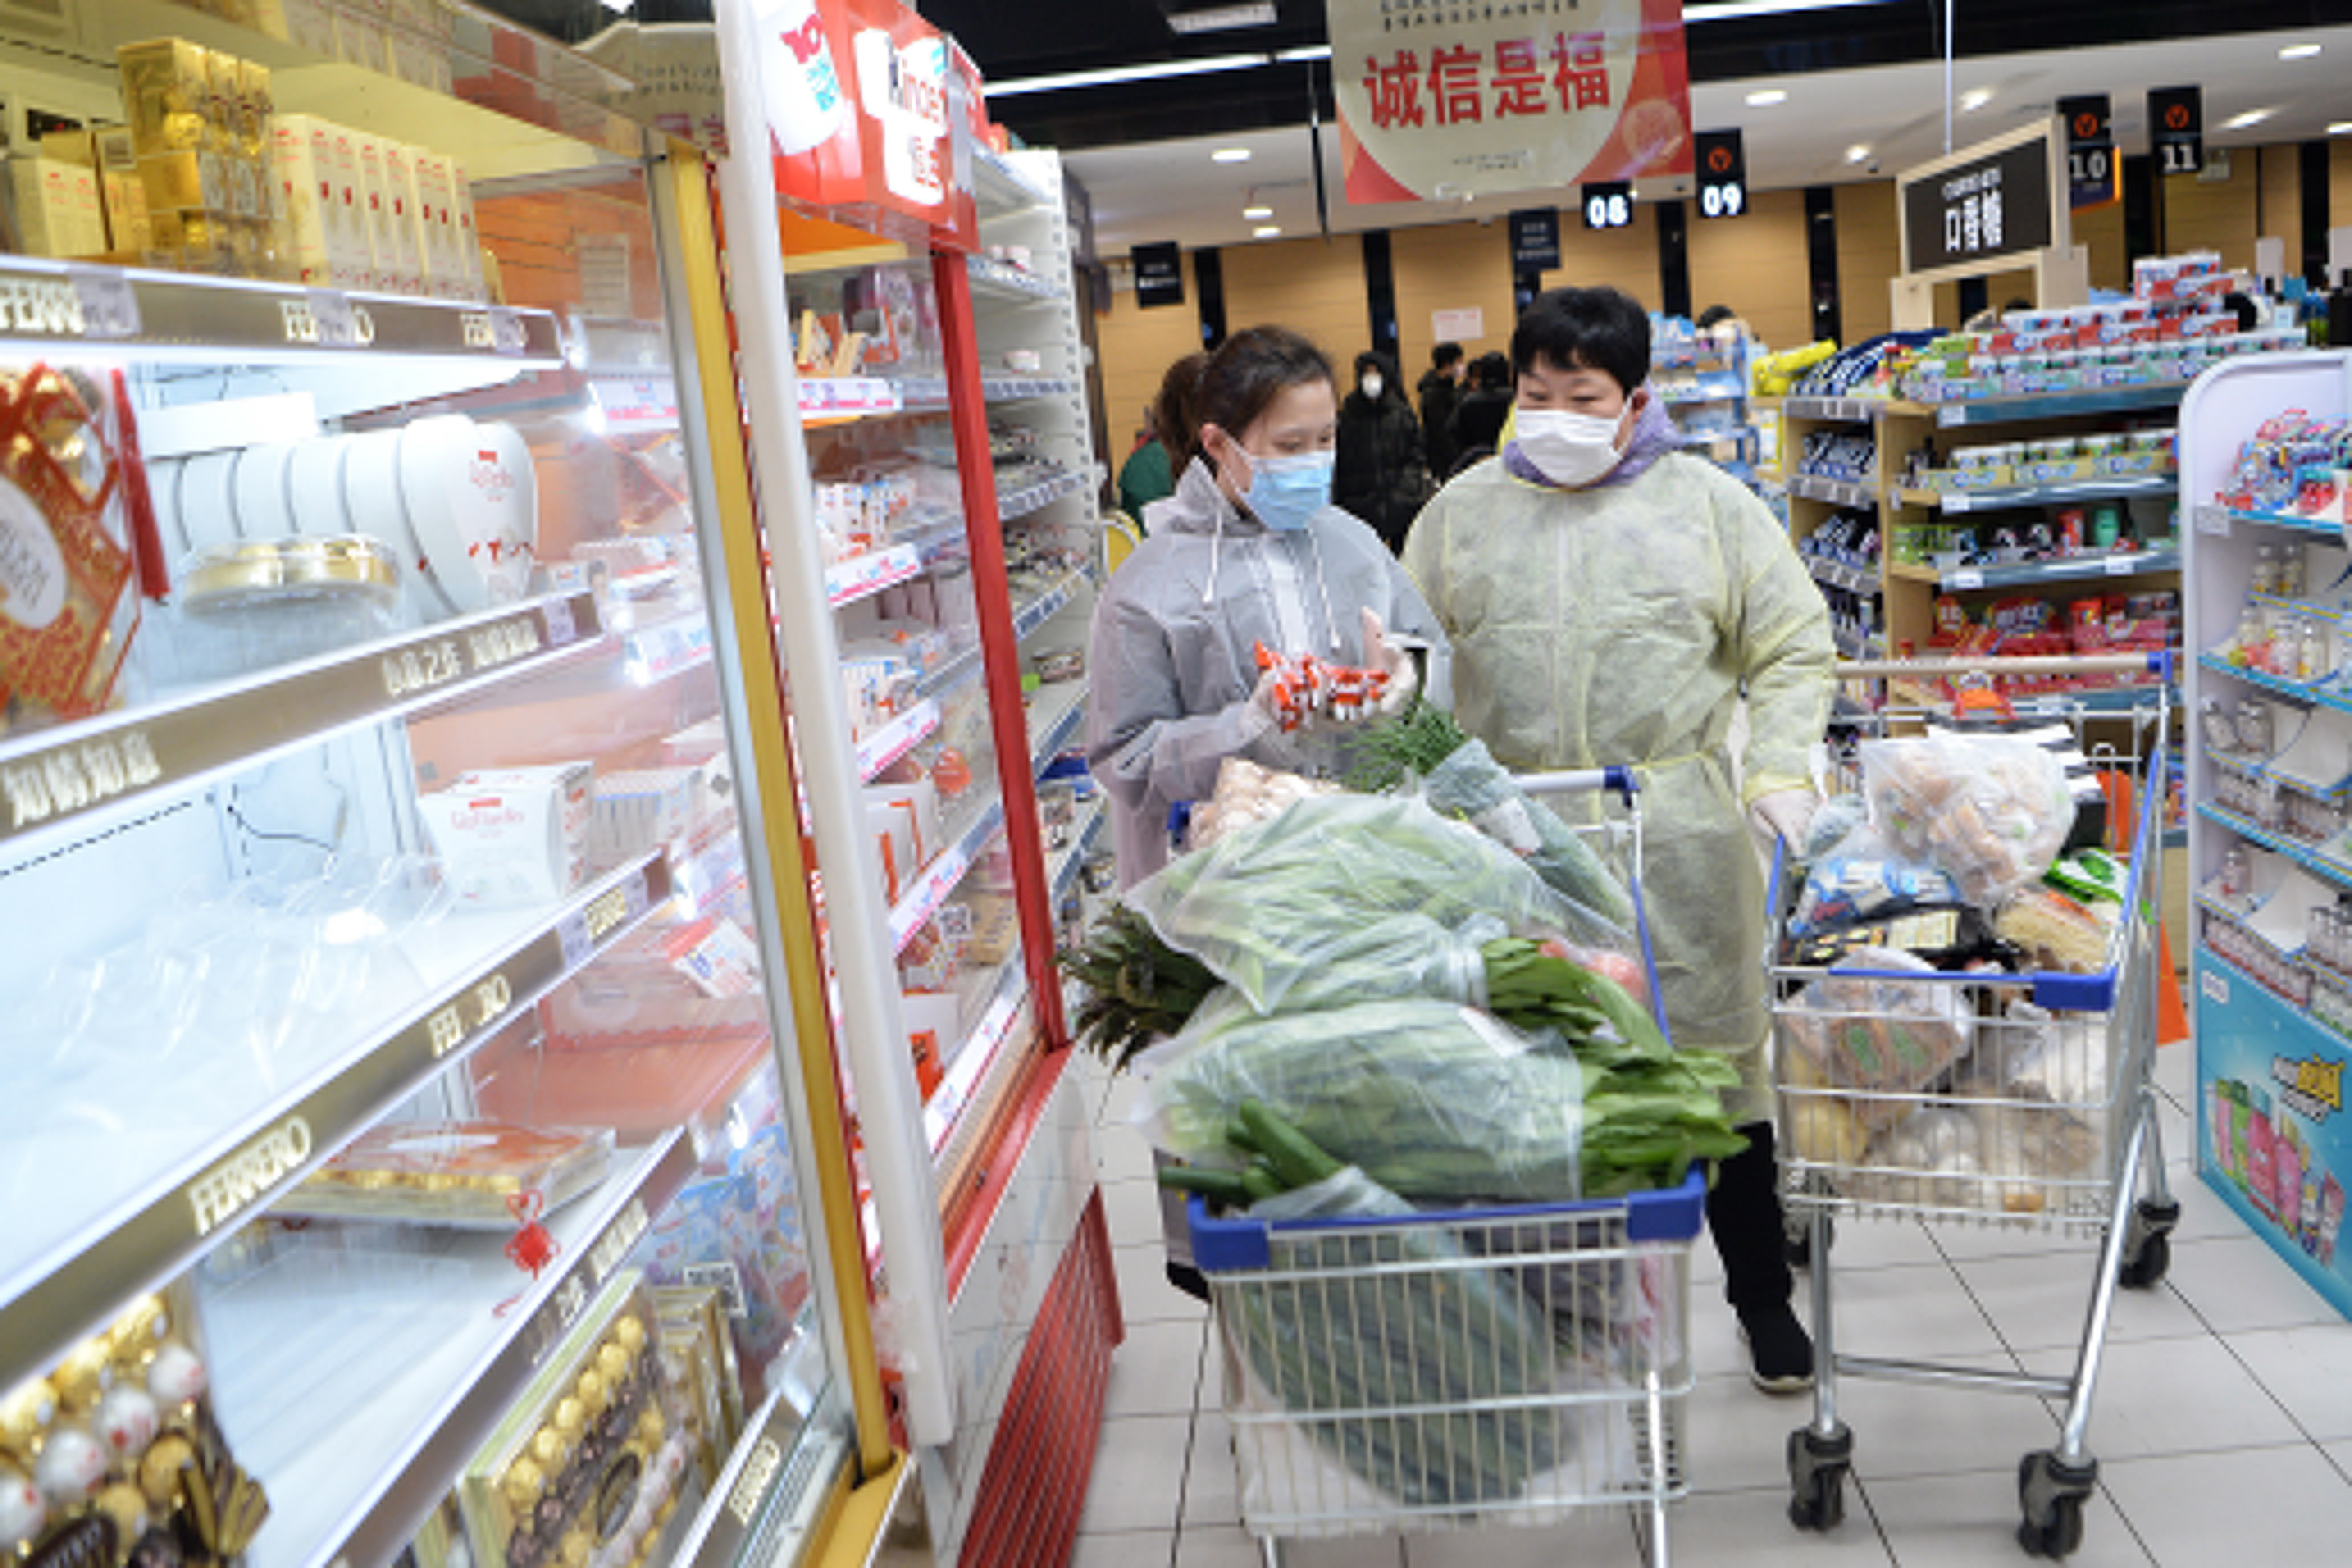 Masked shoppers wearing plastic coats shop in a supermarket in Wuhan, the epicenter of the coronavirus outbreak.